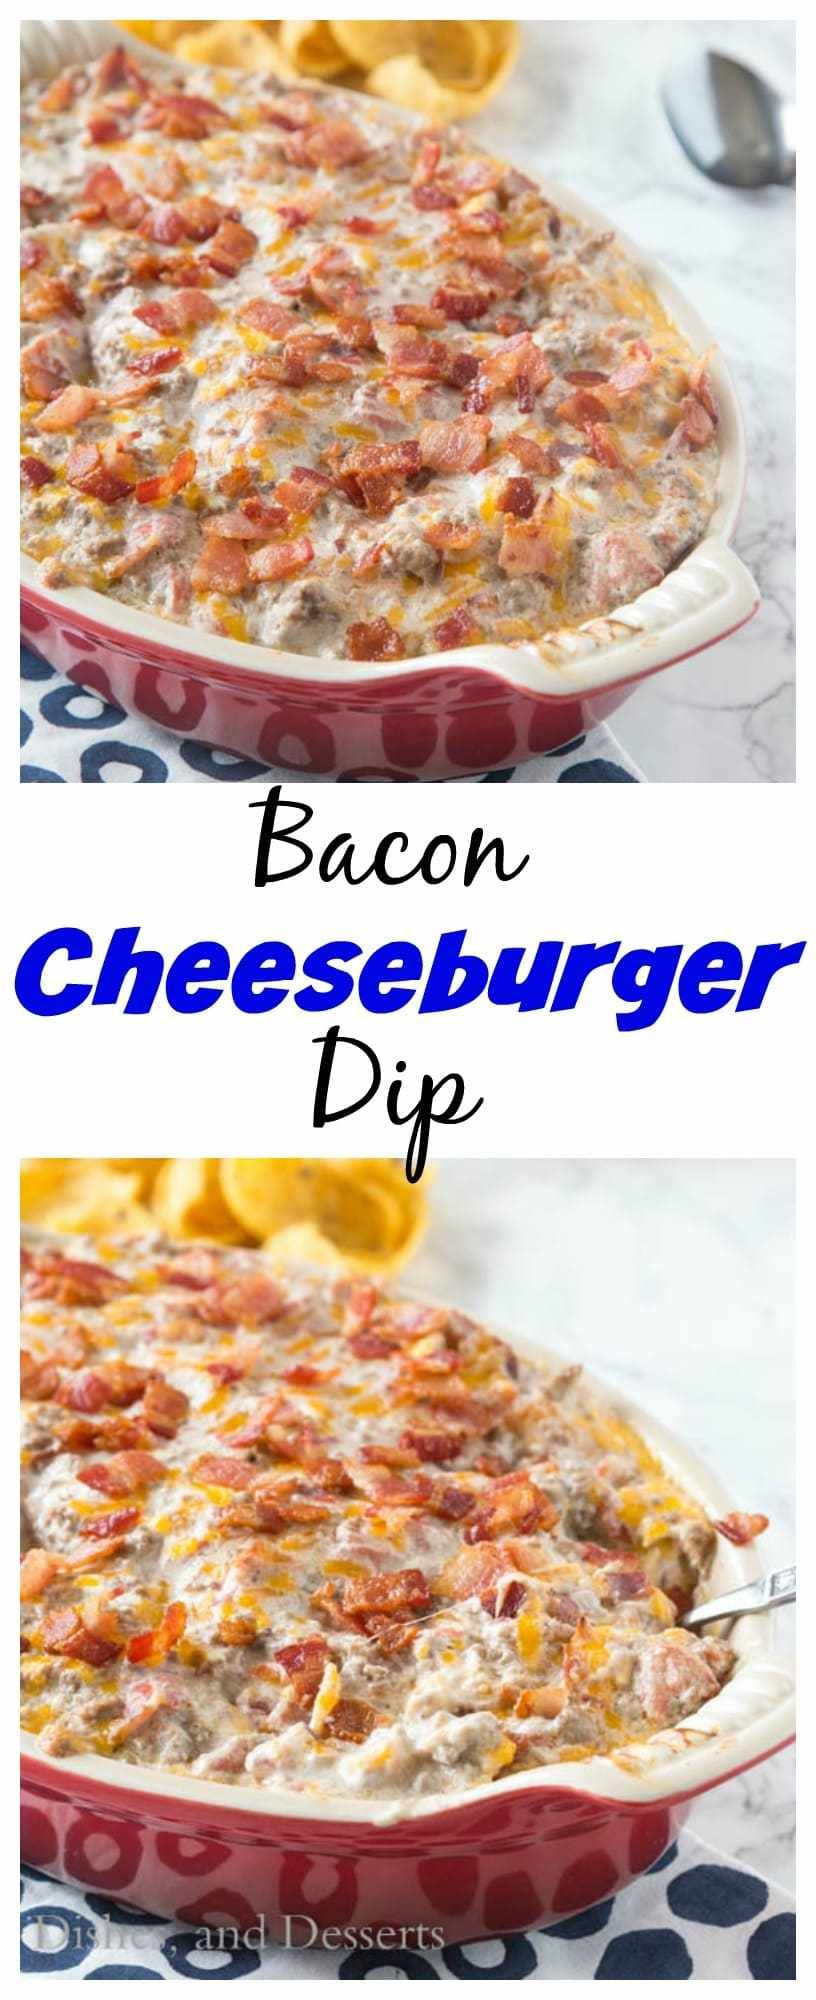 Bacon Cheeseburger Dip - Dinners, Dishes, and Desserts